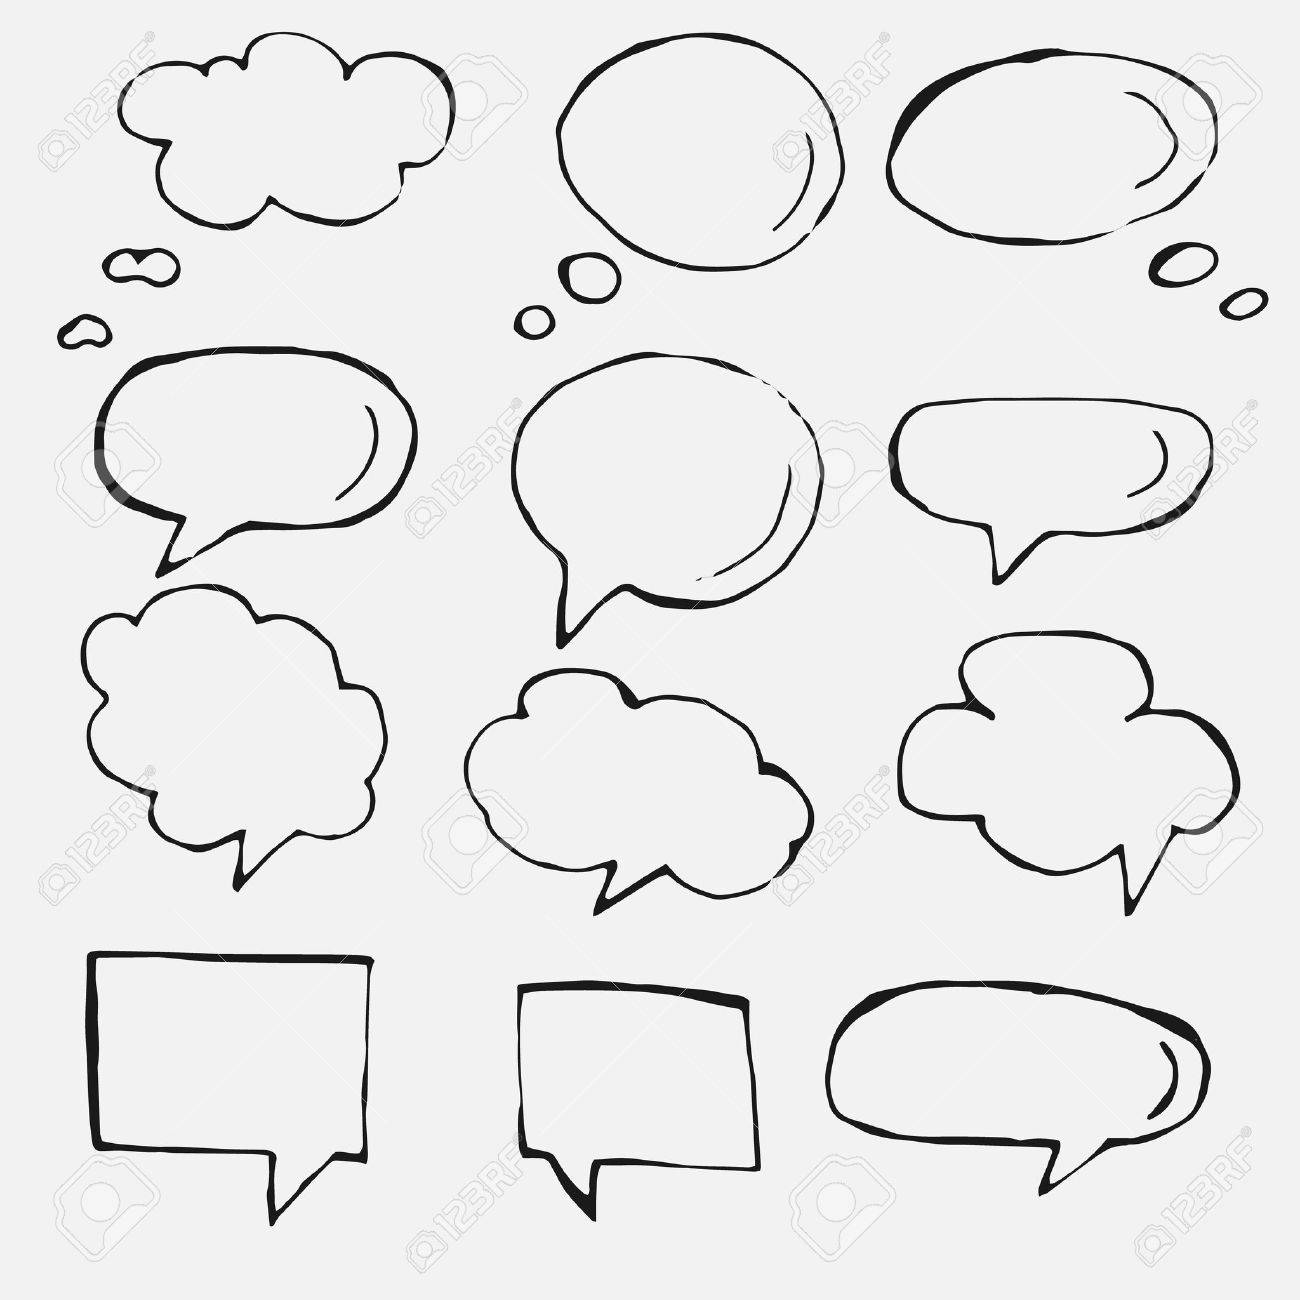 1300x1300 Hand Drawn Thought And Speech Bubbles And Balloons. Royalty Free